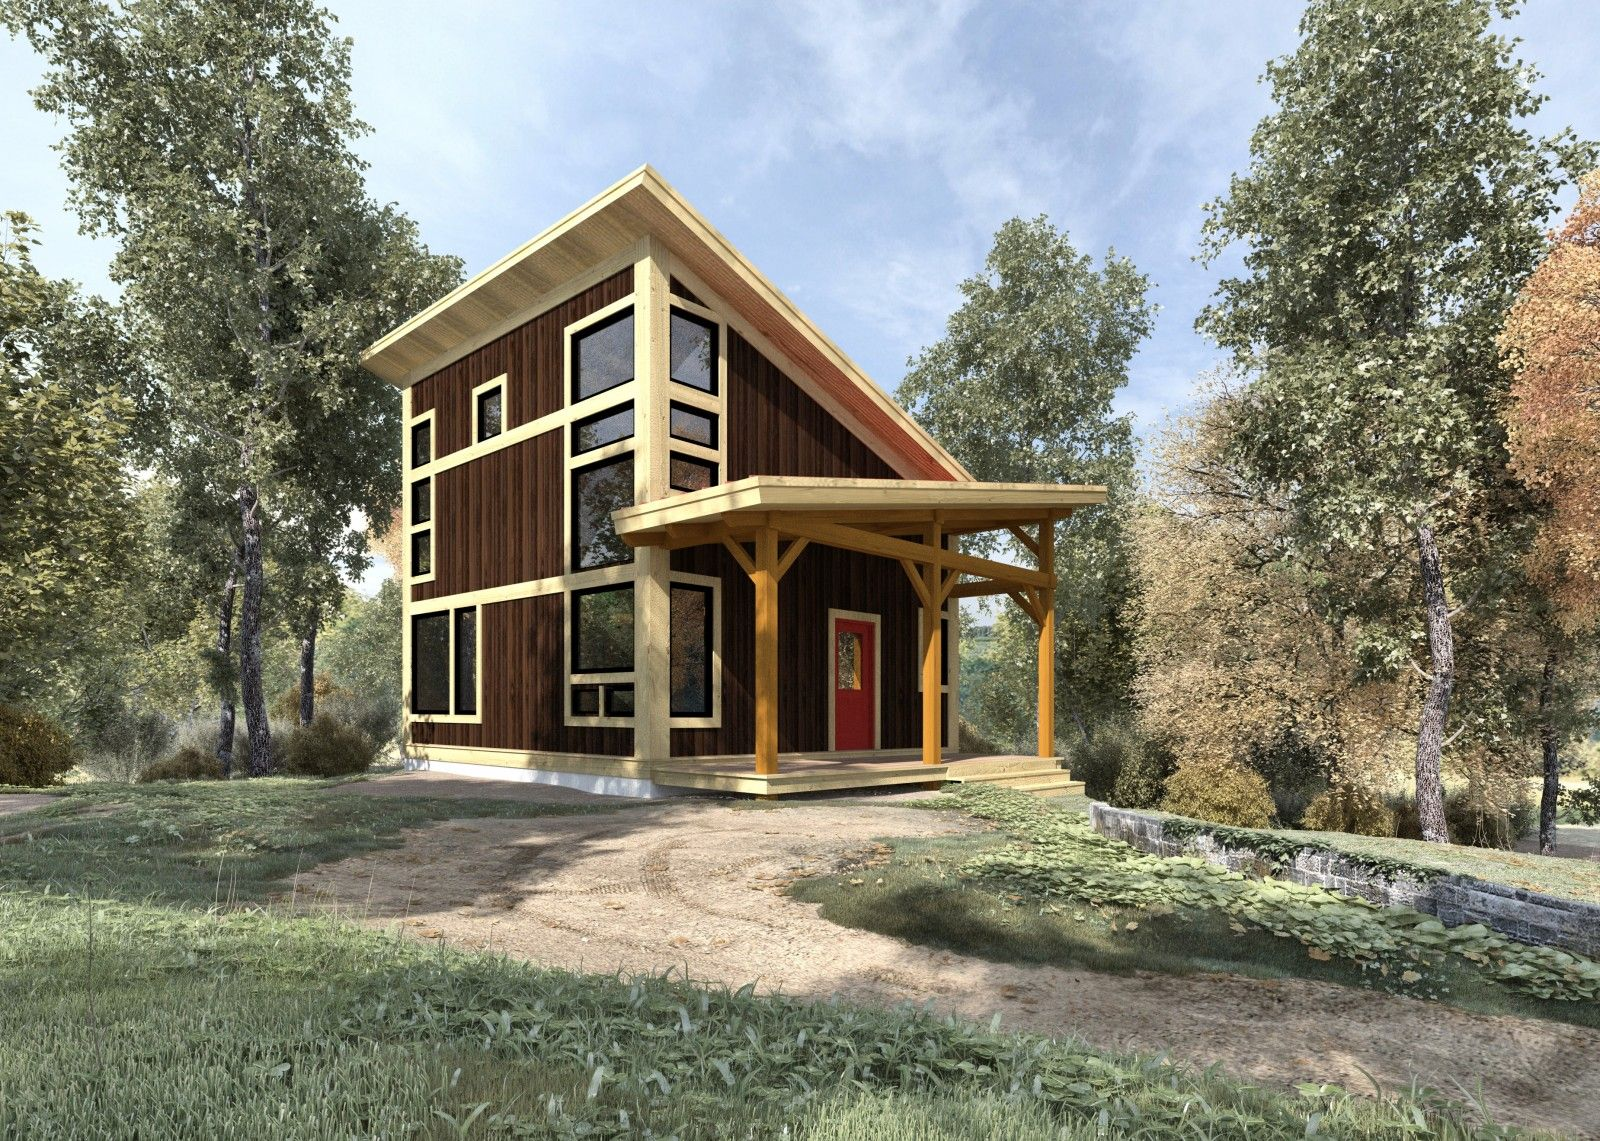 Best Small Homes Cabins Cottages Images On Pinterest - Timber frame homes plans